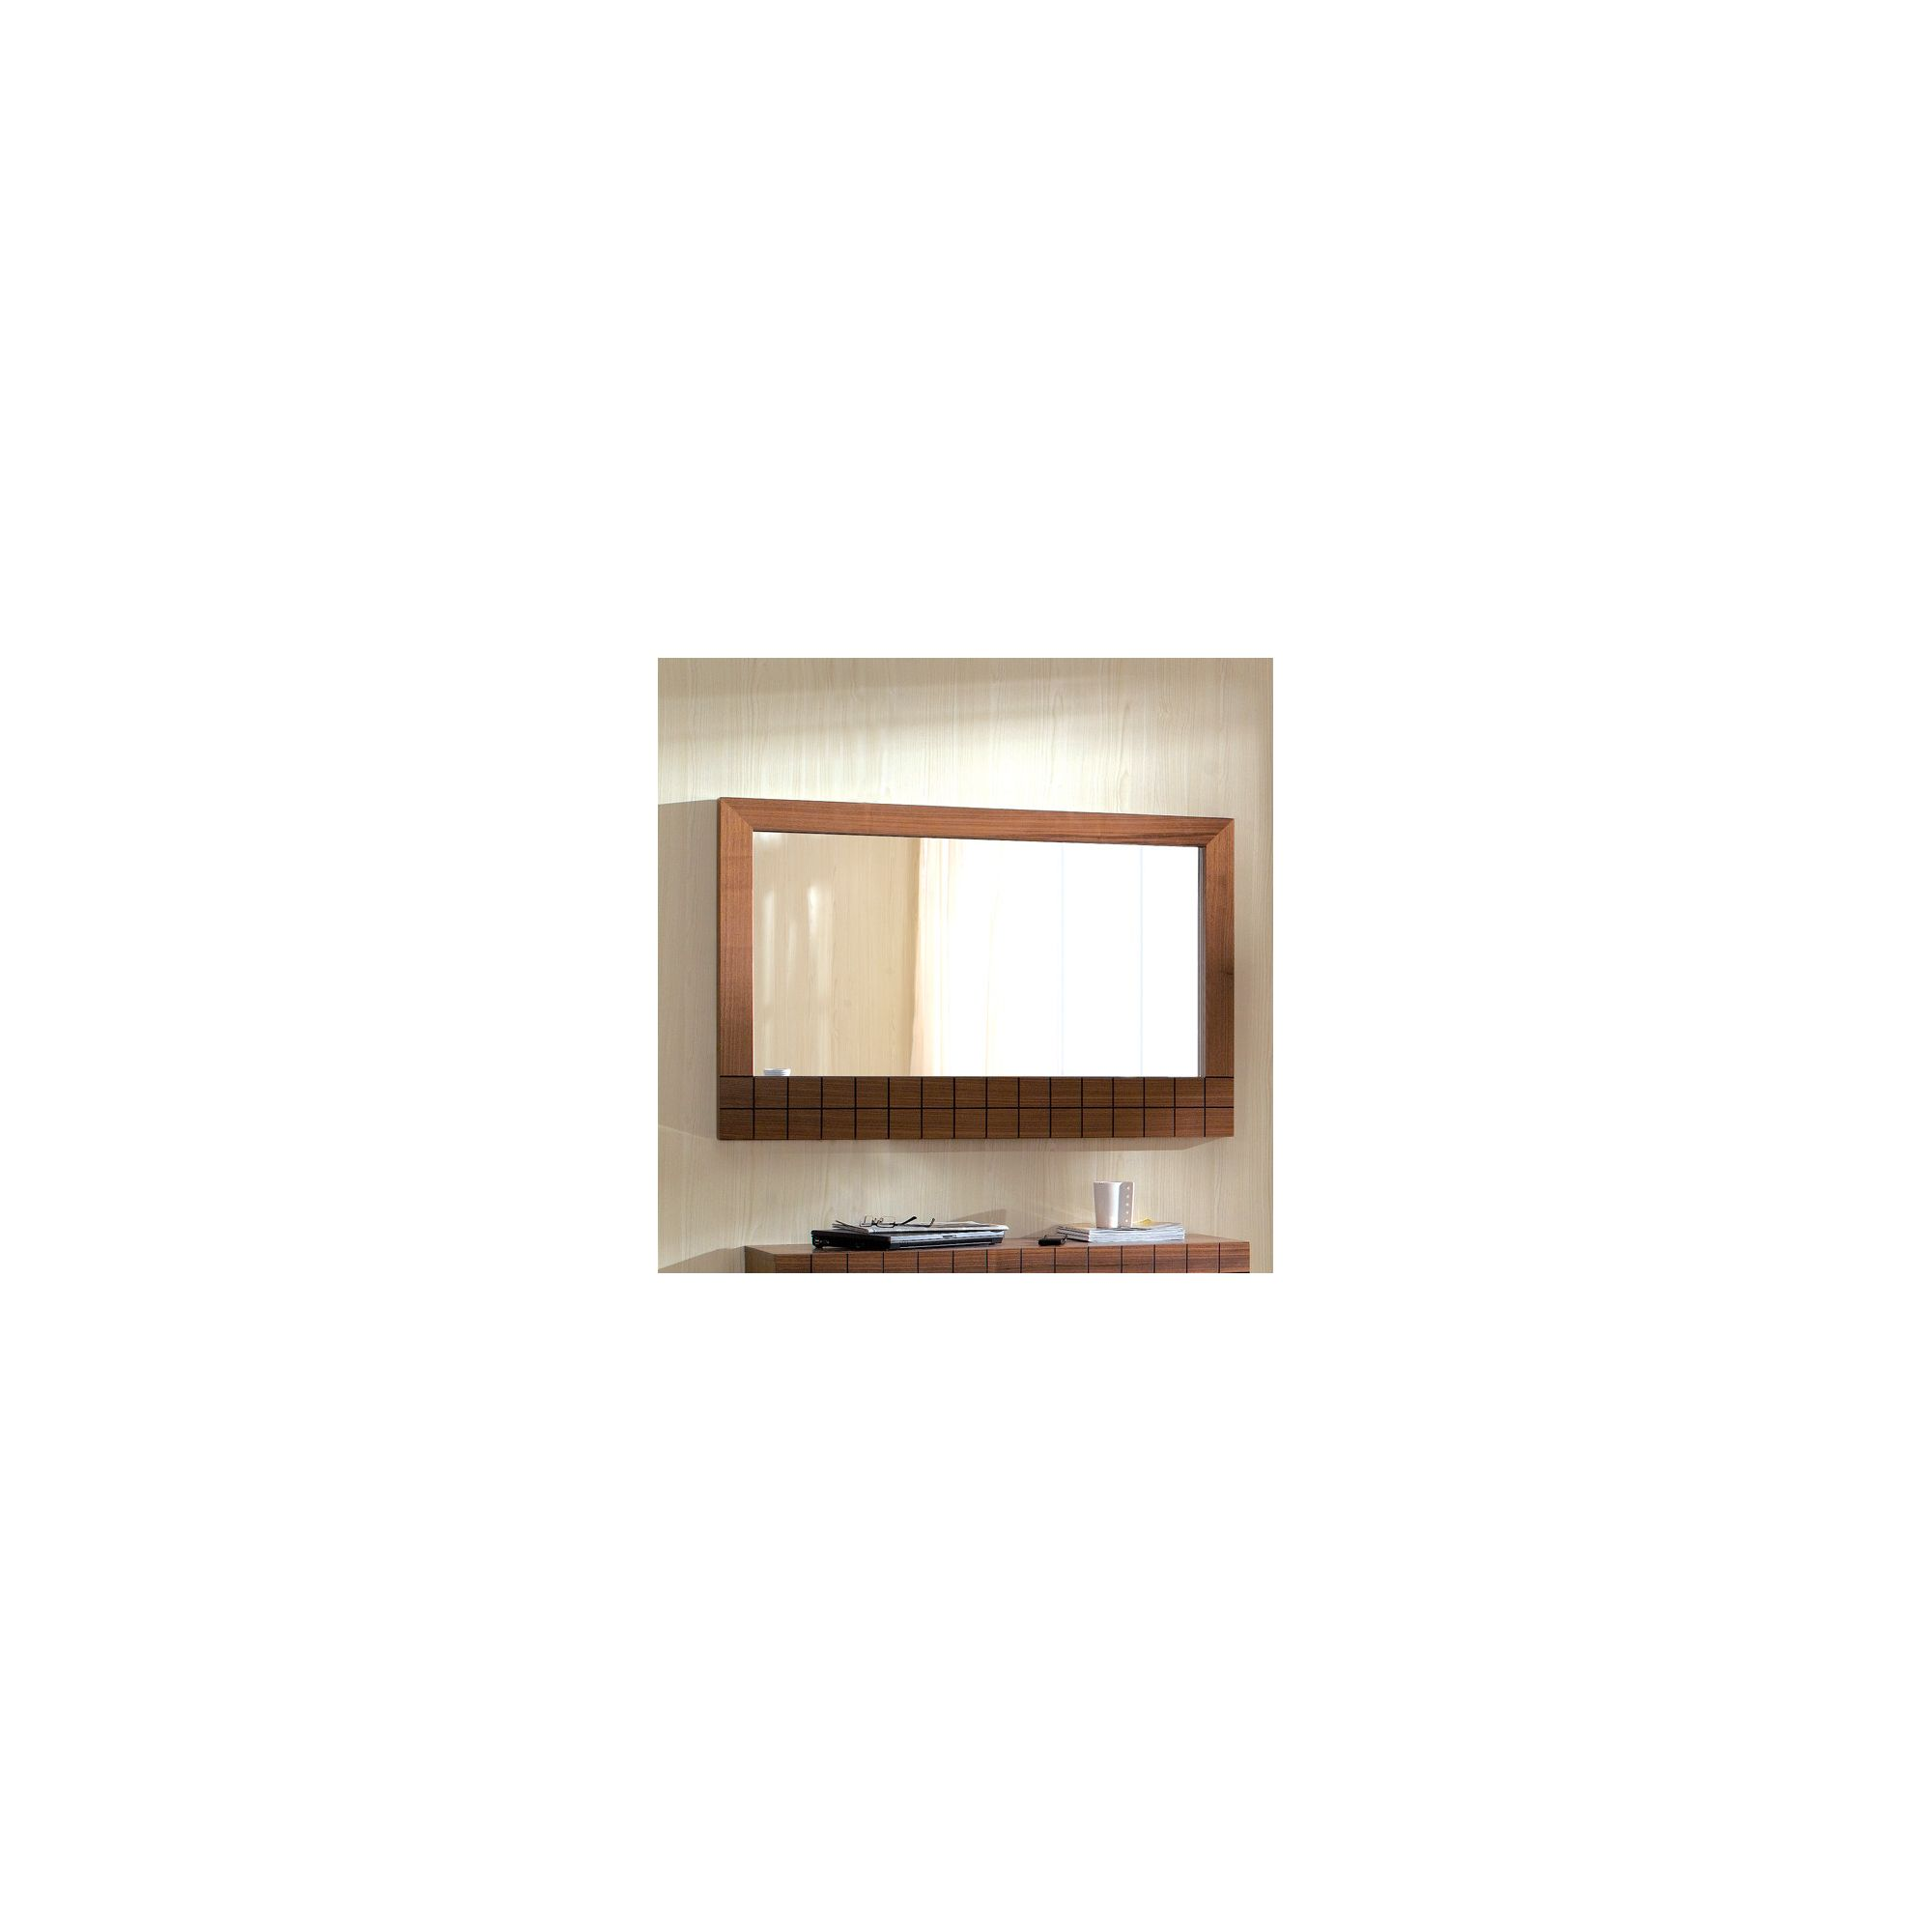 Gillmore Space Barcelona Wall Hanging Mirror - 5.5cm H x 112cm W x 73cm D - Walnut at Tescos Direct